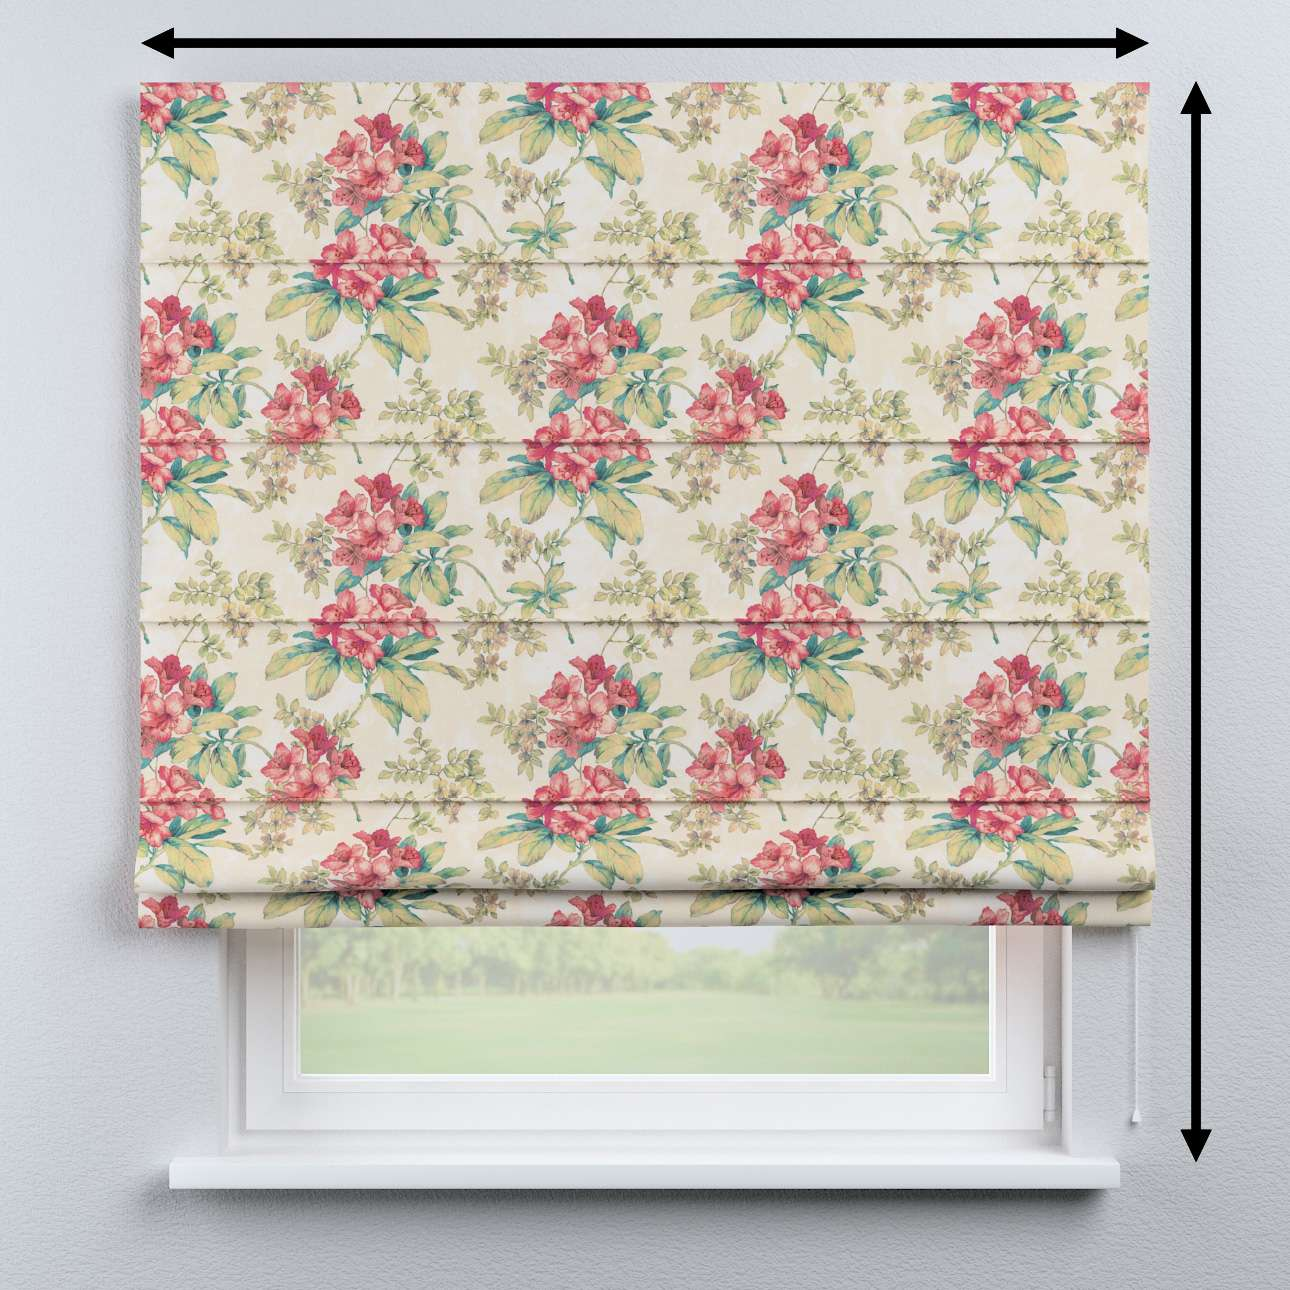 Capri roman blind in collection Londres, fabric: 143-40